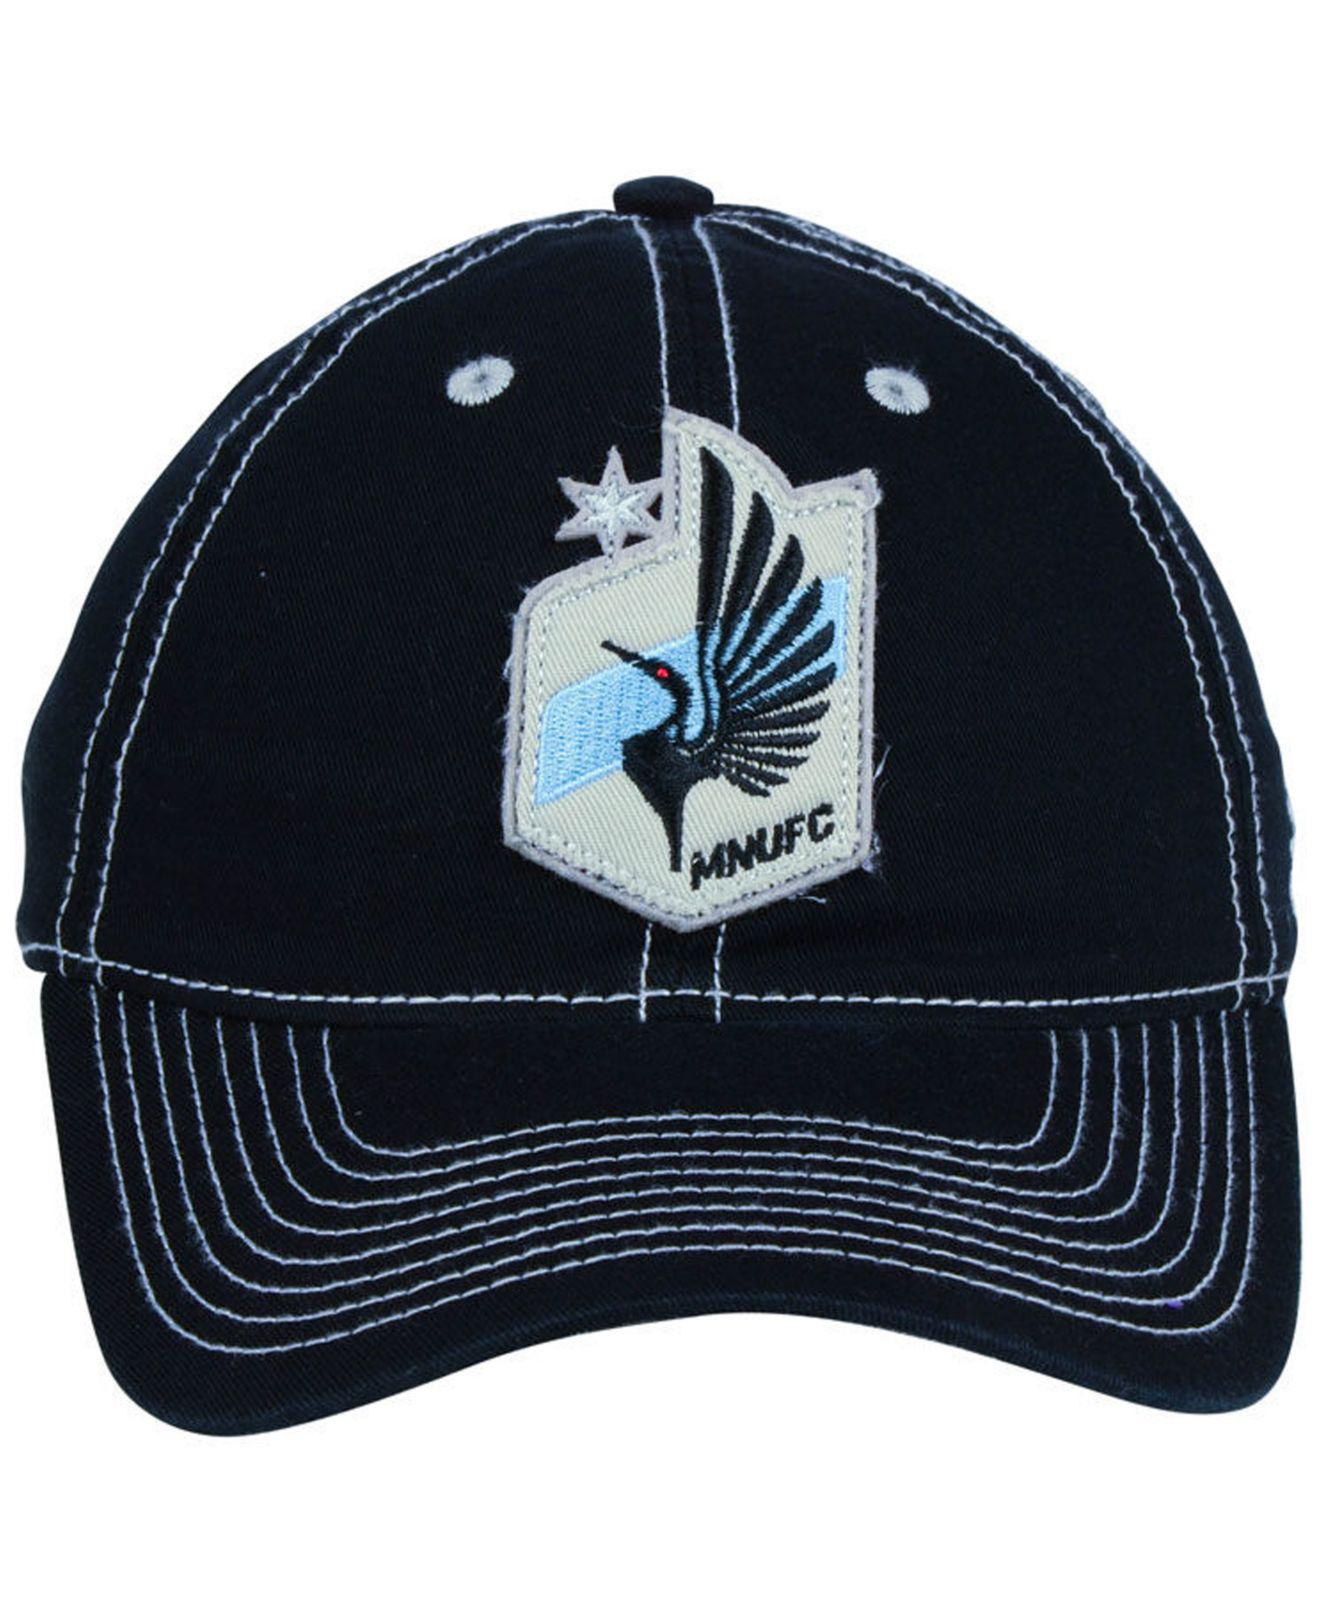 new arrival 16484 0e3d7 ... top quality lyst adidas minnesota united fc sand blast adjustable cap  in black for men a6998